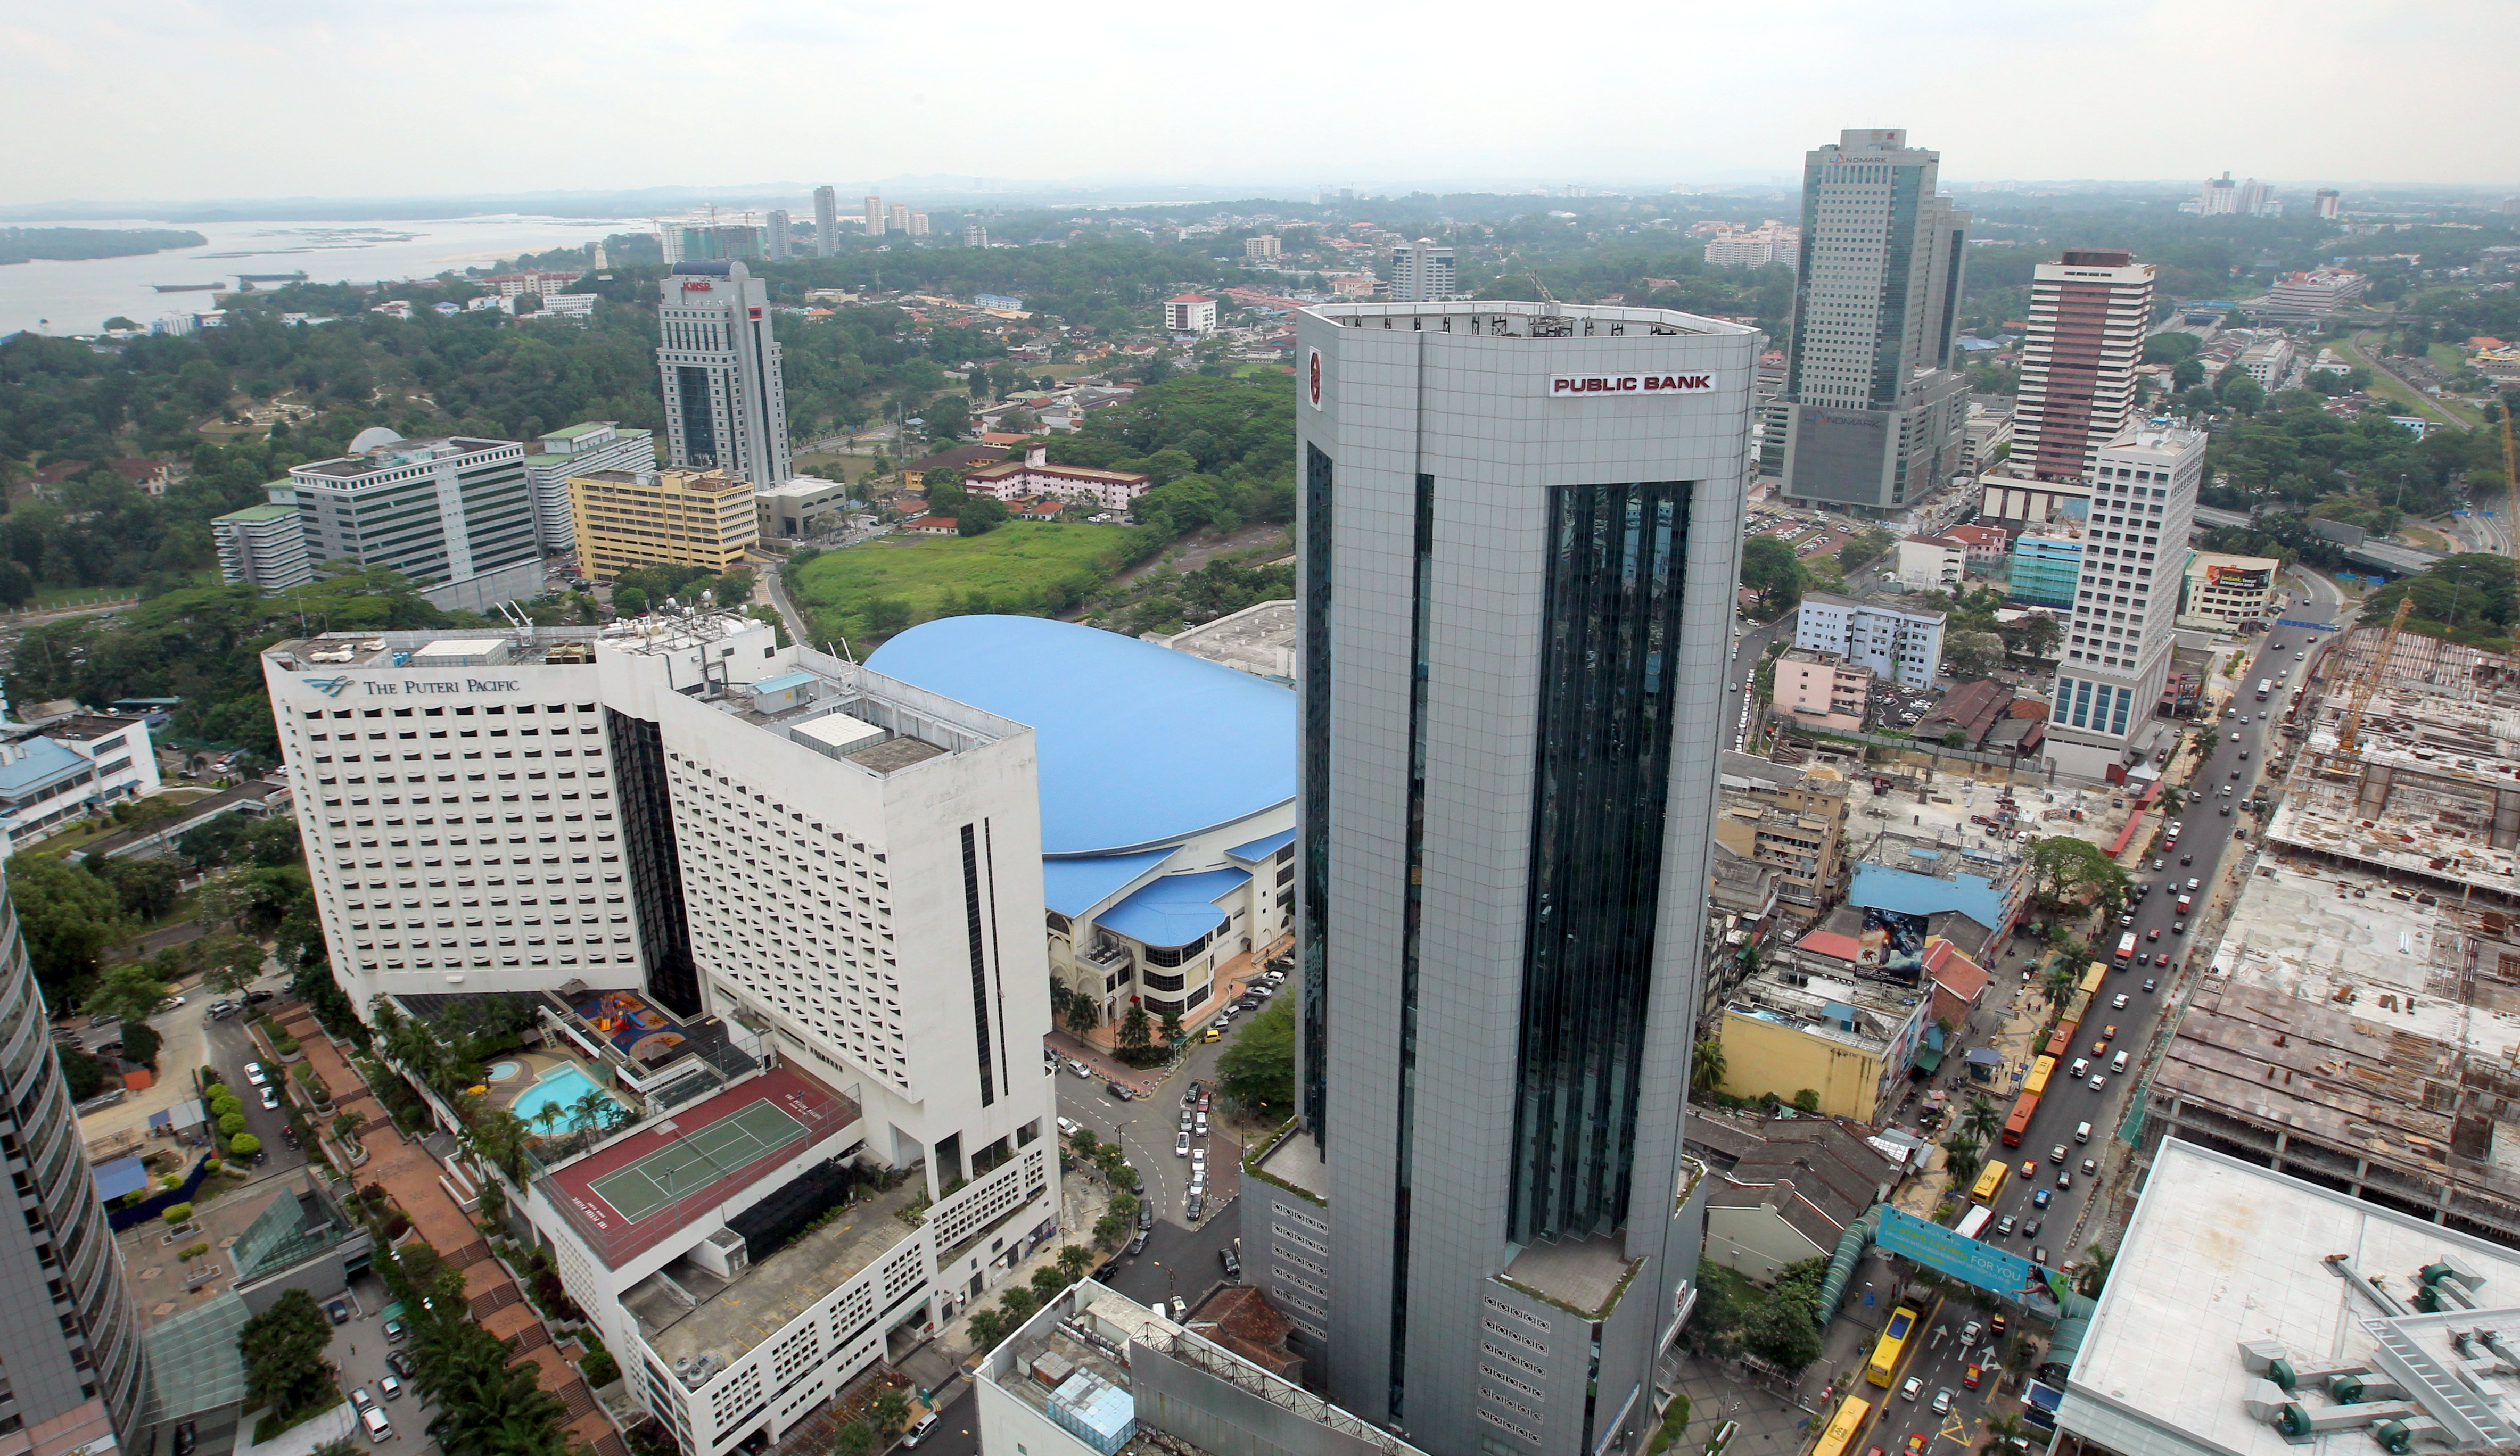 Property For Sales Or Rent In Johor Bahru, Malaysia